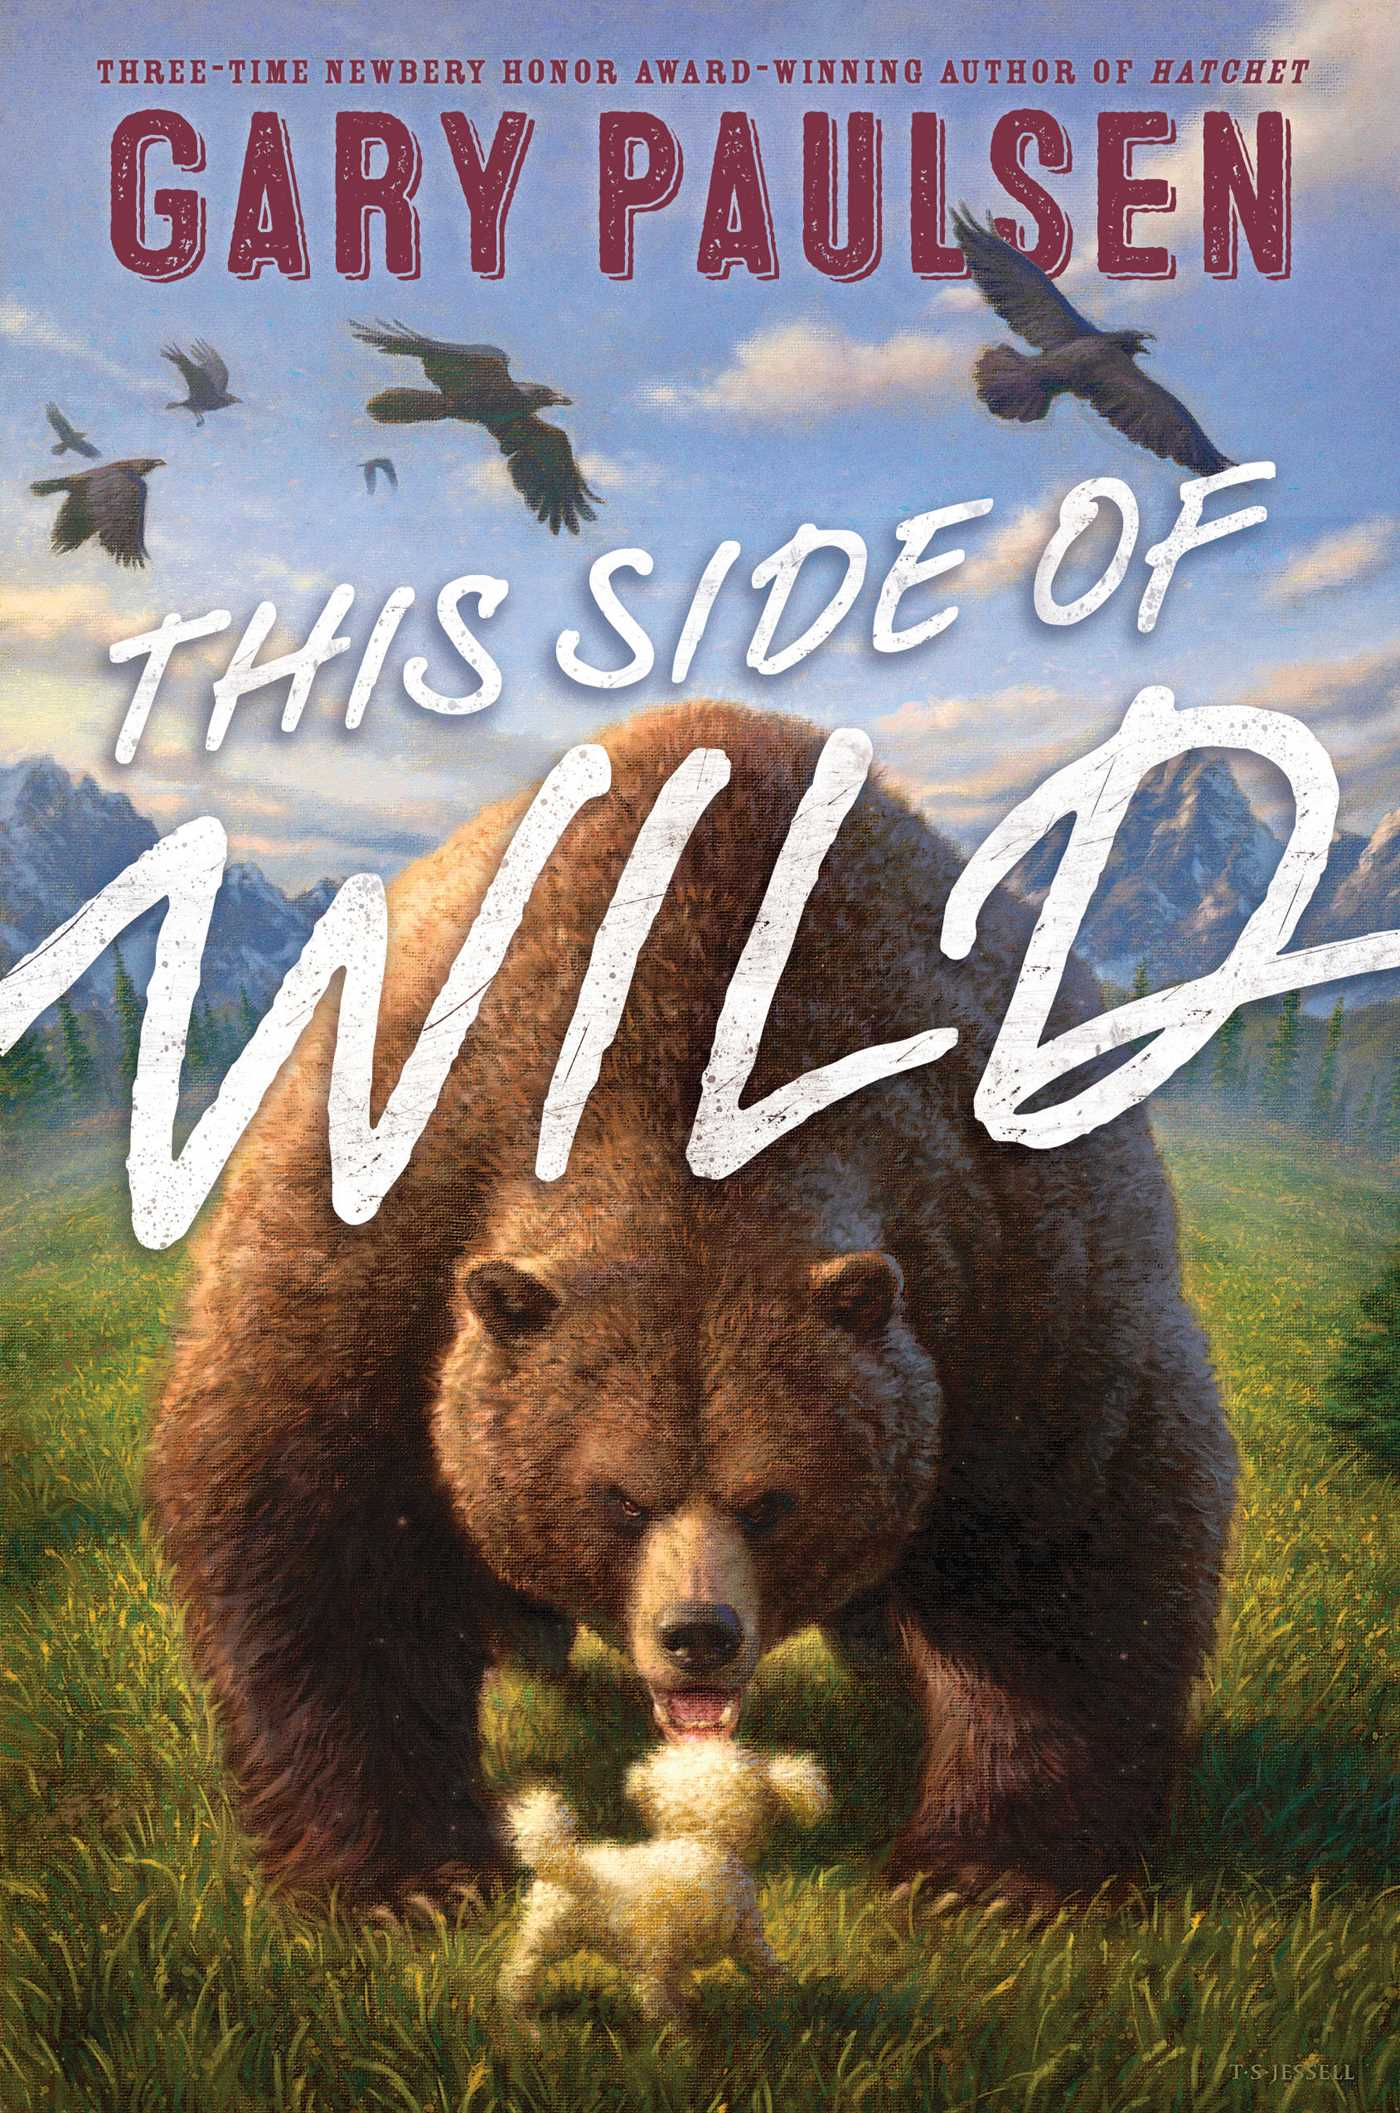 Gary paulsen official publisher page simon schuster canada book cover image jpg this side of wild ebook 9781481451529 fandeluxe Gallery